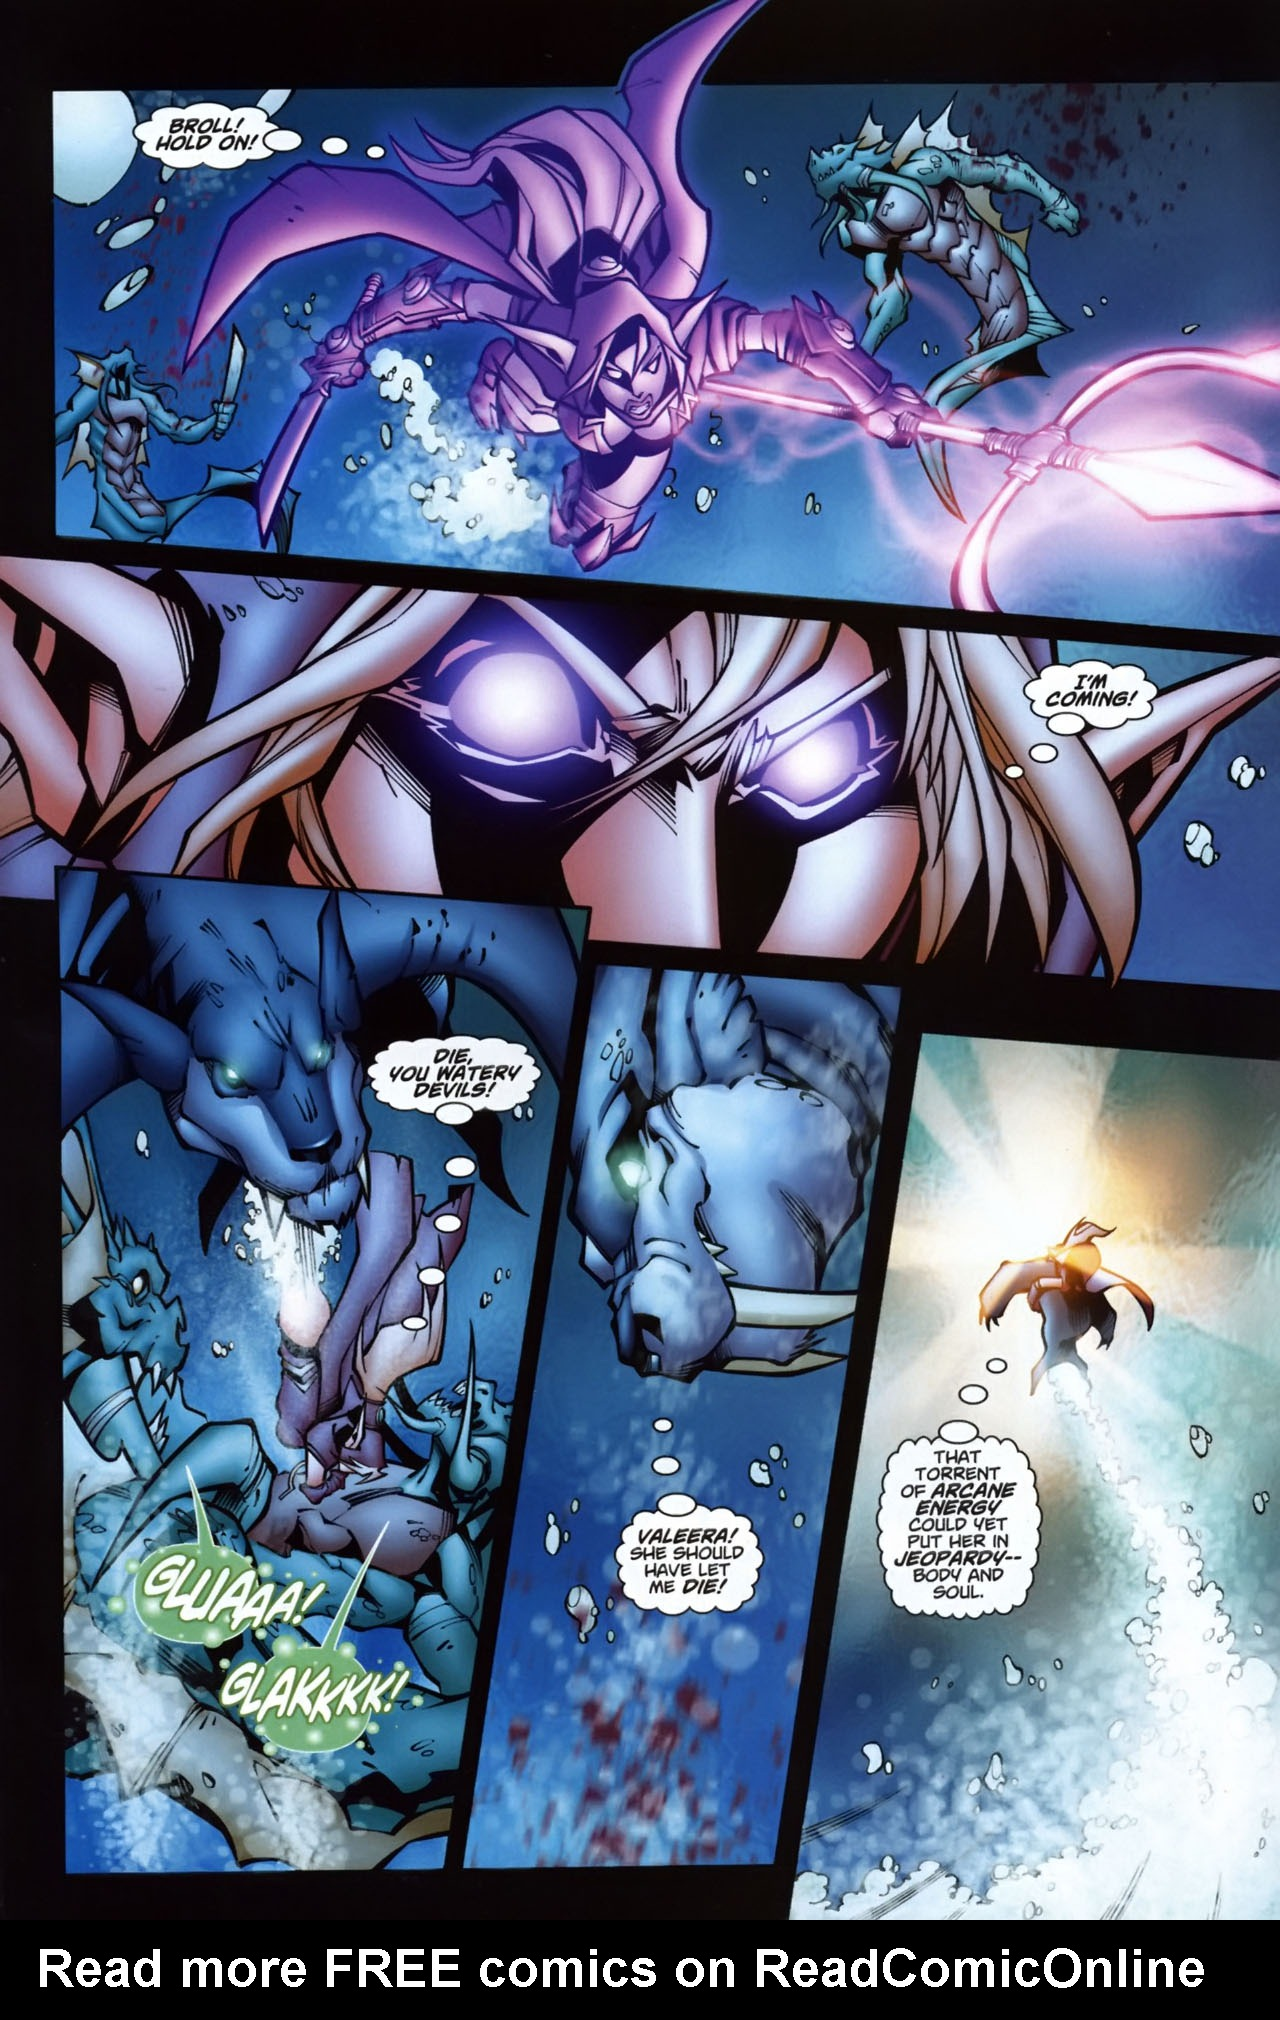 Read online World of Warcraft comic -  Issue #7 - 14